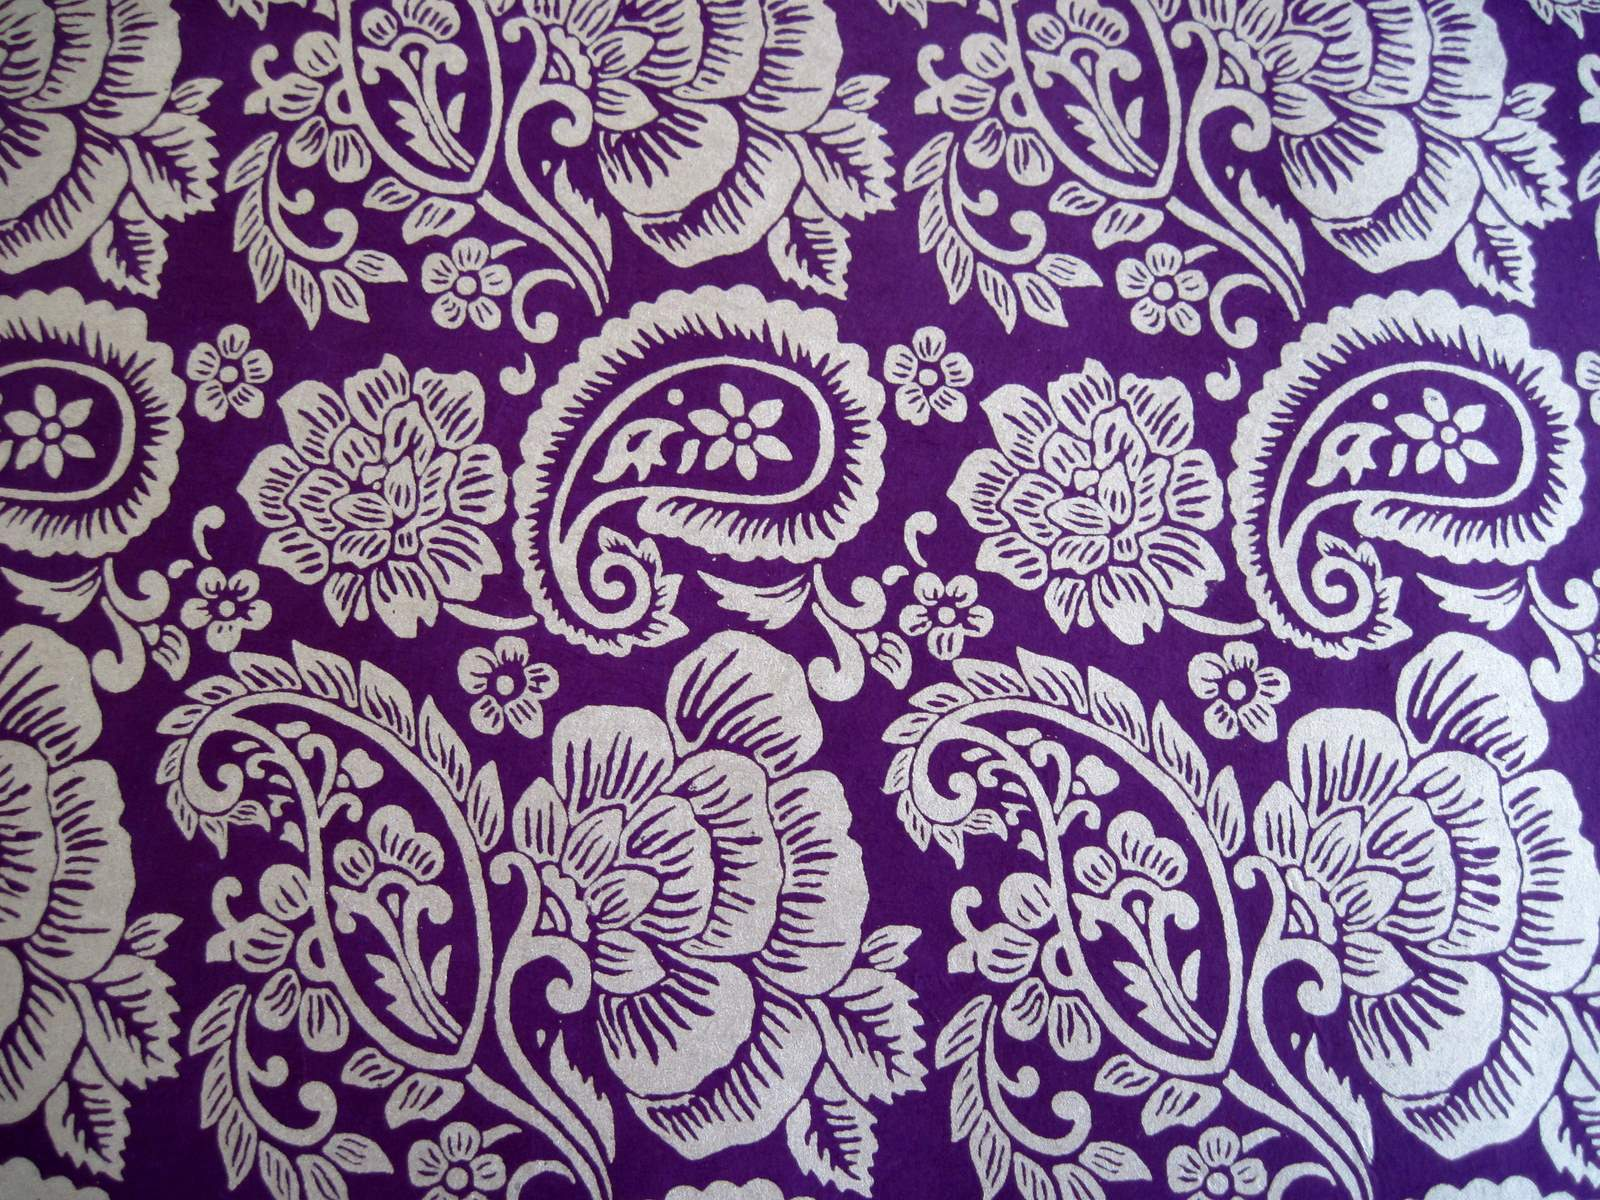 Partial To Paisley On Pinterest Paisley Michael Kors